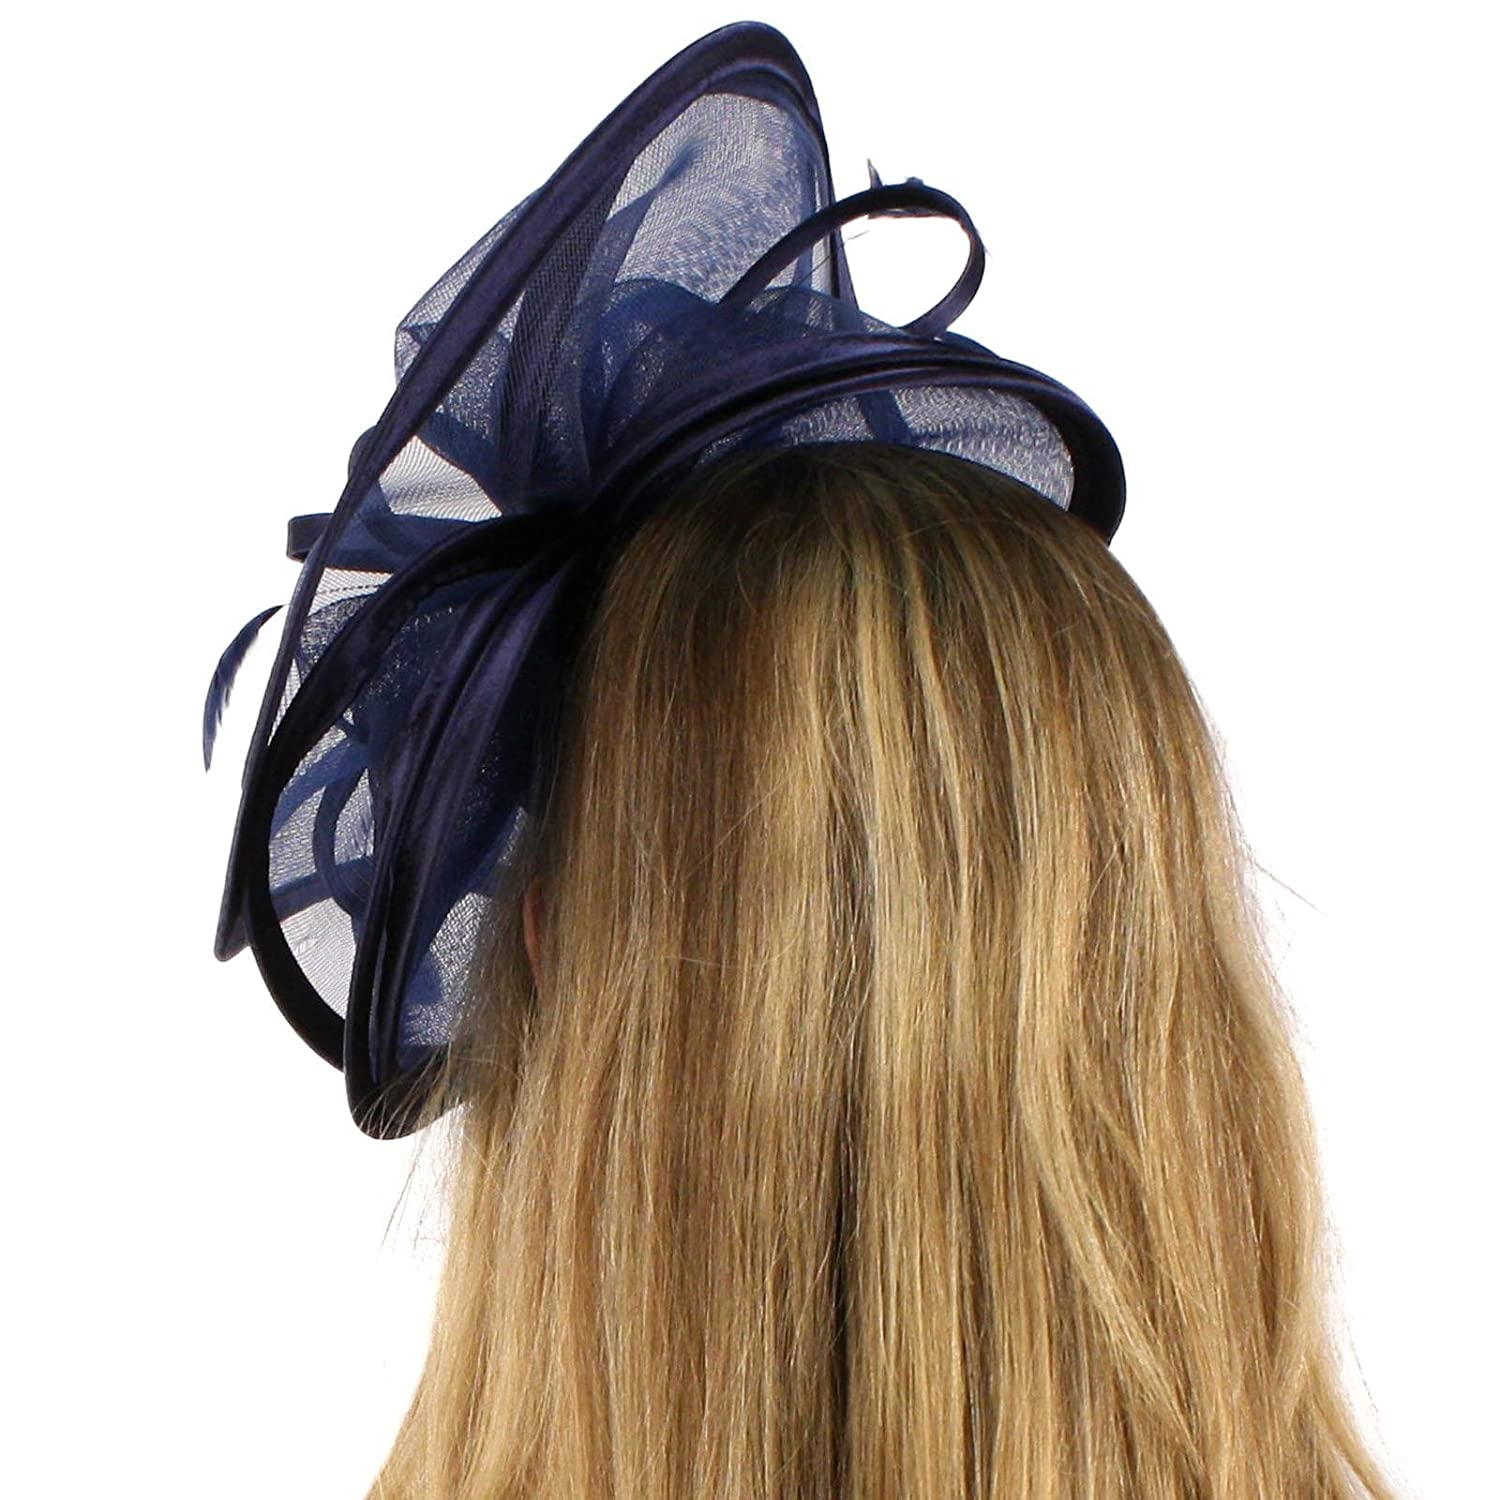 Feathers 3 Tier Layer 2 Tone Headband Fascinator Millinery Cocktail Hat SK Hat Shop